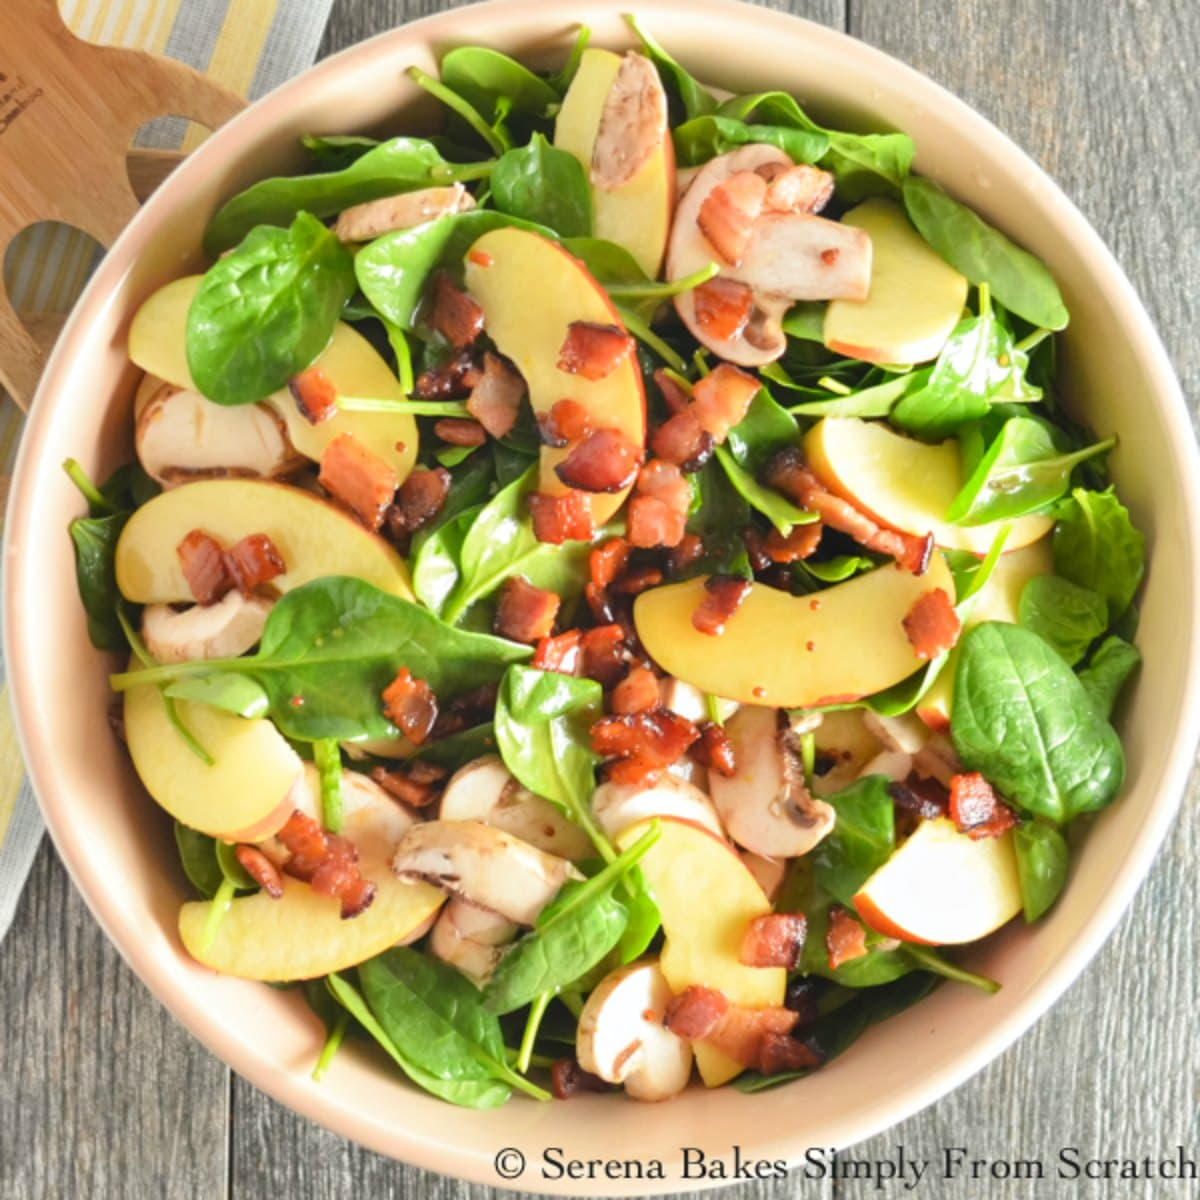 Spinach Salad with bacon, fuji apples and a homemade honey mustard dressing. The flavor combination is delicious from Serena Bakes Simply From Scratch.